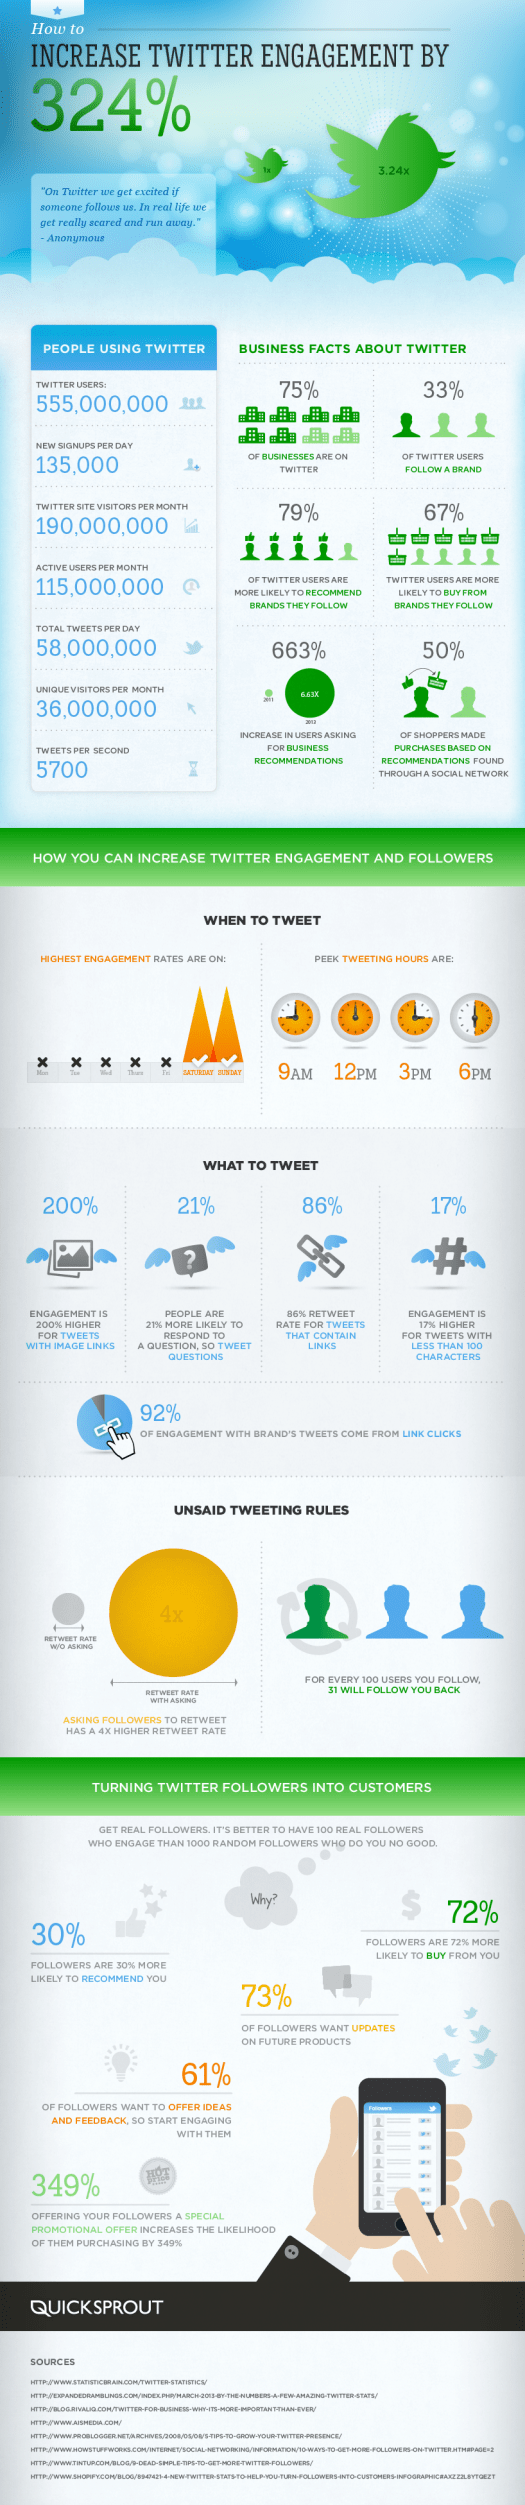 twitterengagement How your Healthcare Facility Can Increase Twitter Engagement by 324% [INFOGRAPHIC]